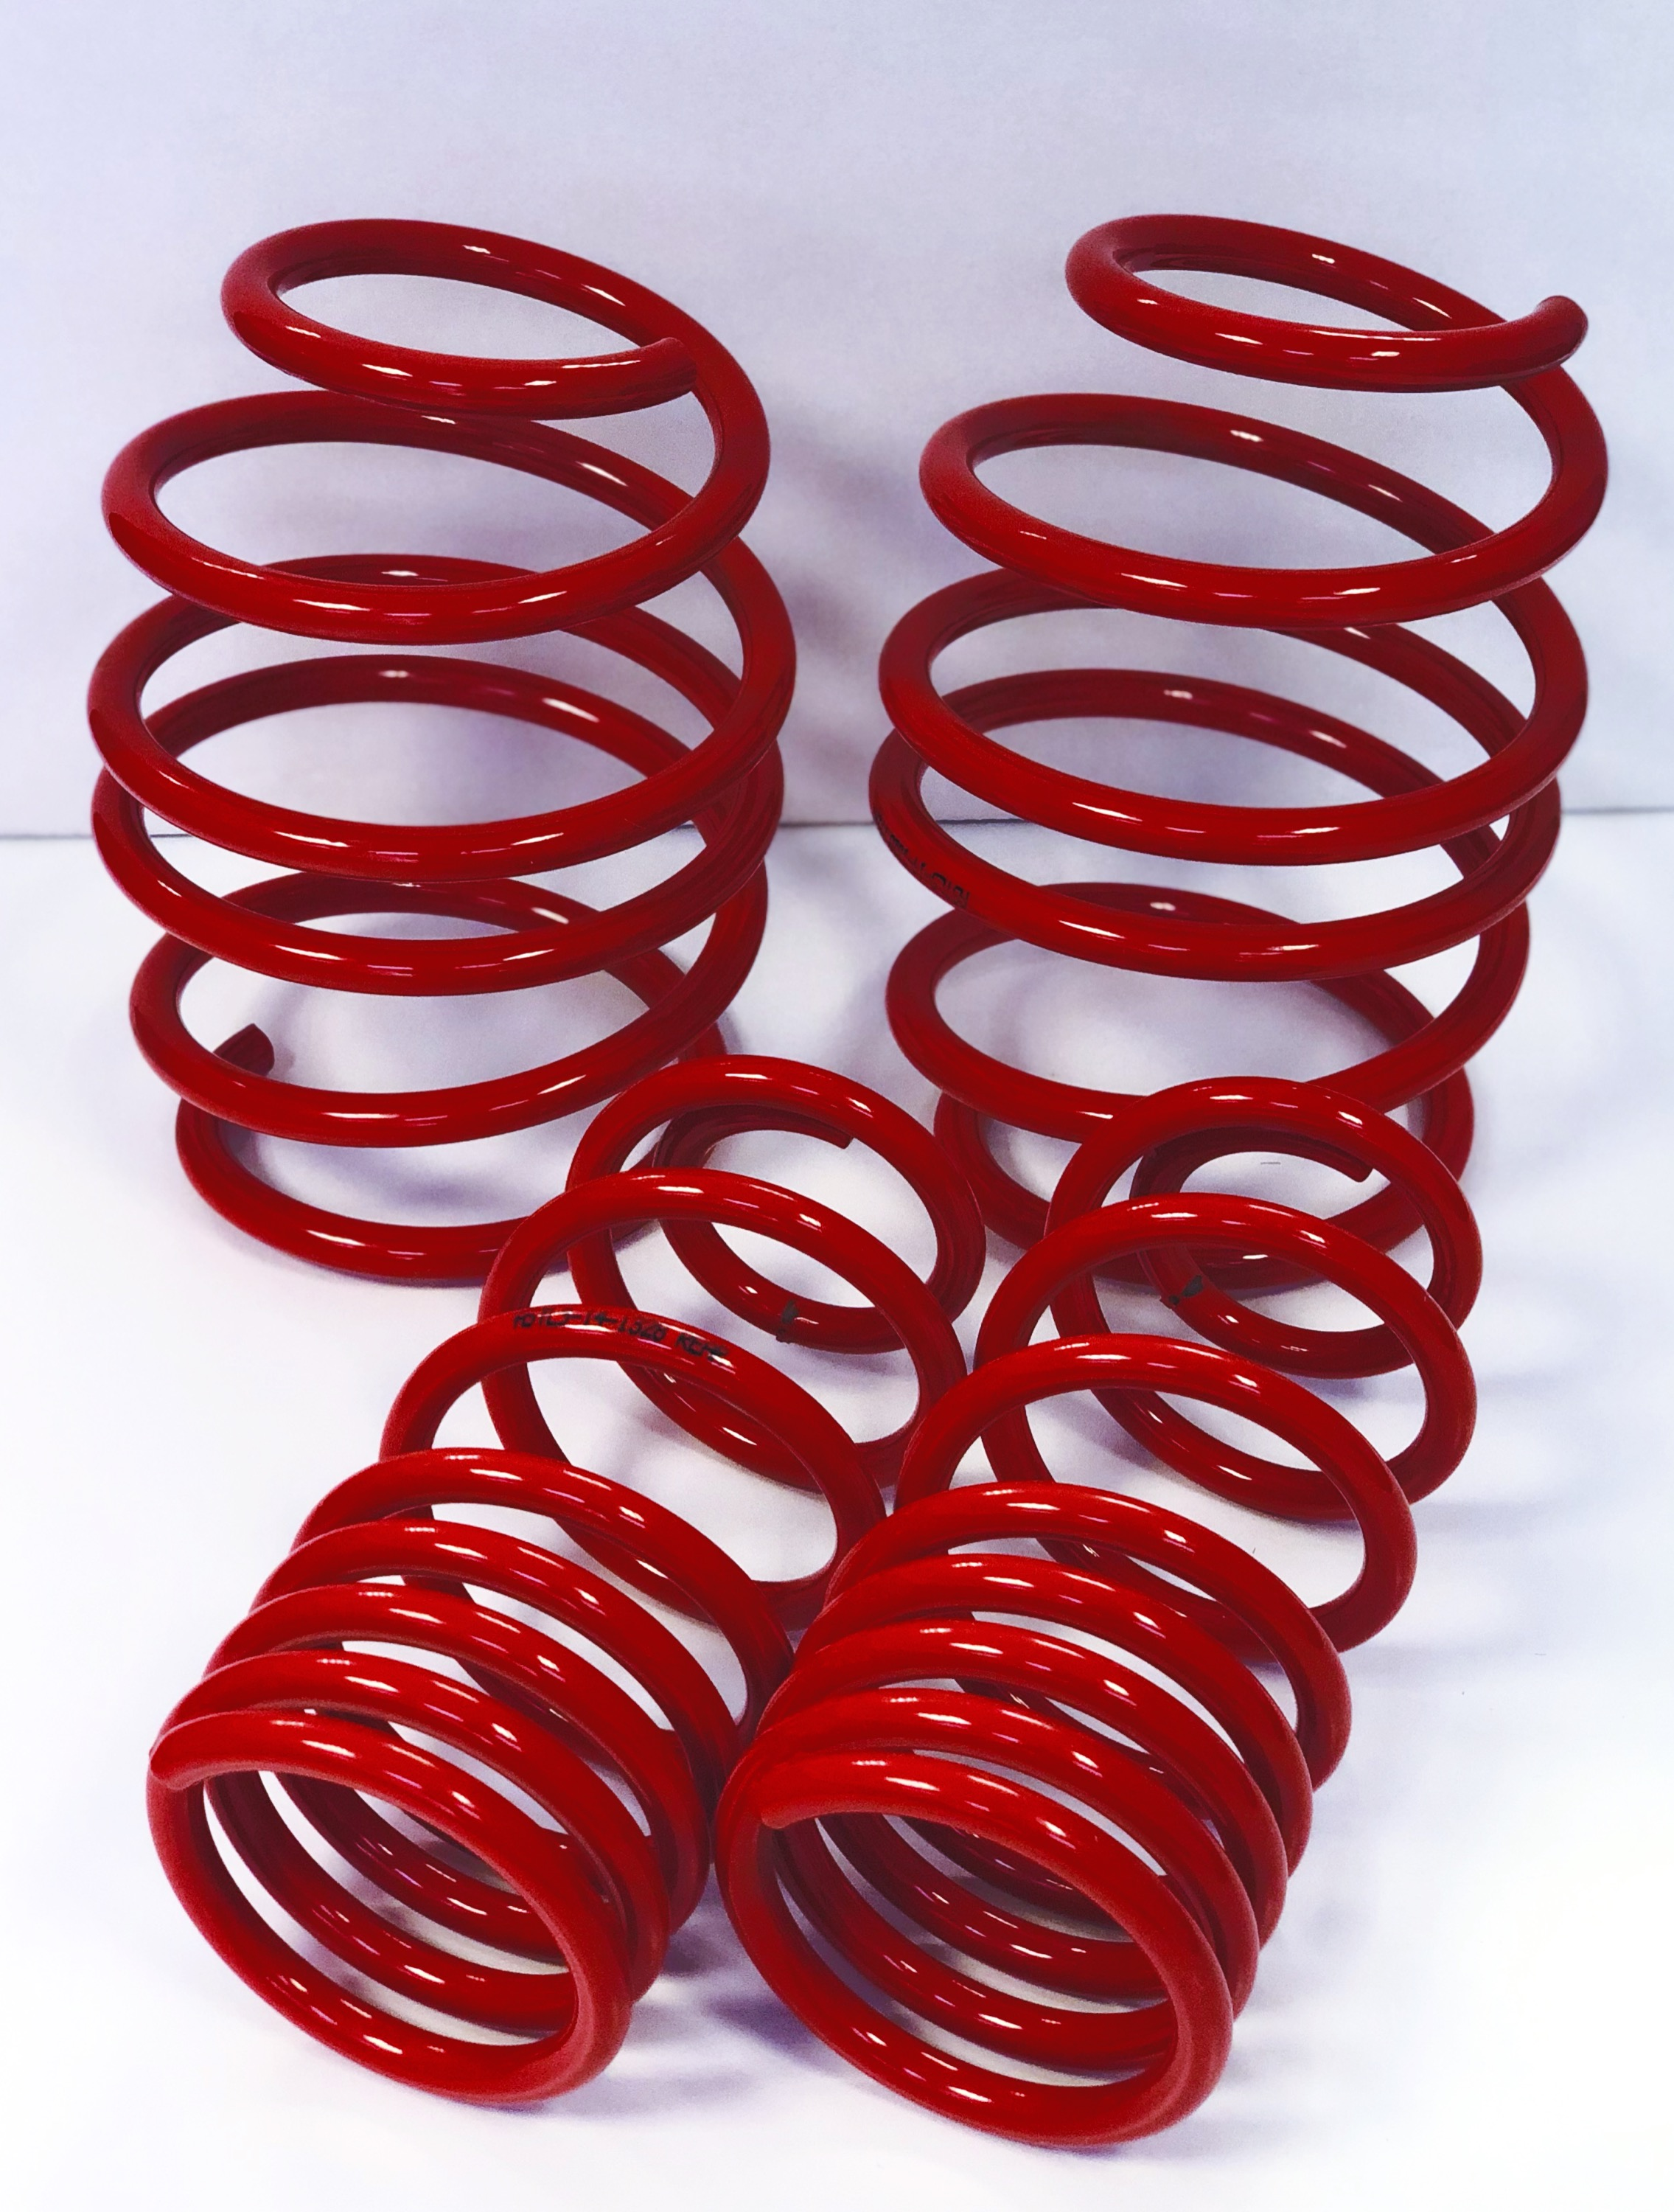 Vauxhall CORSA AST Suspension Lowering Springs 40/30